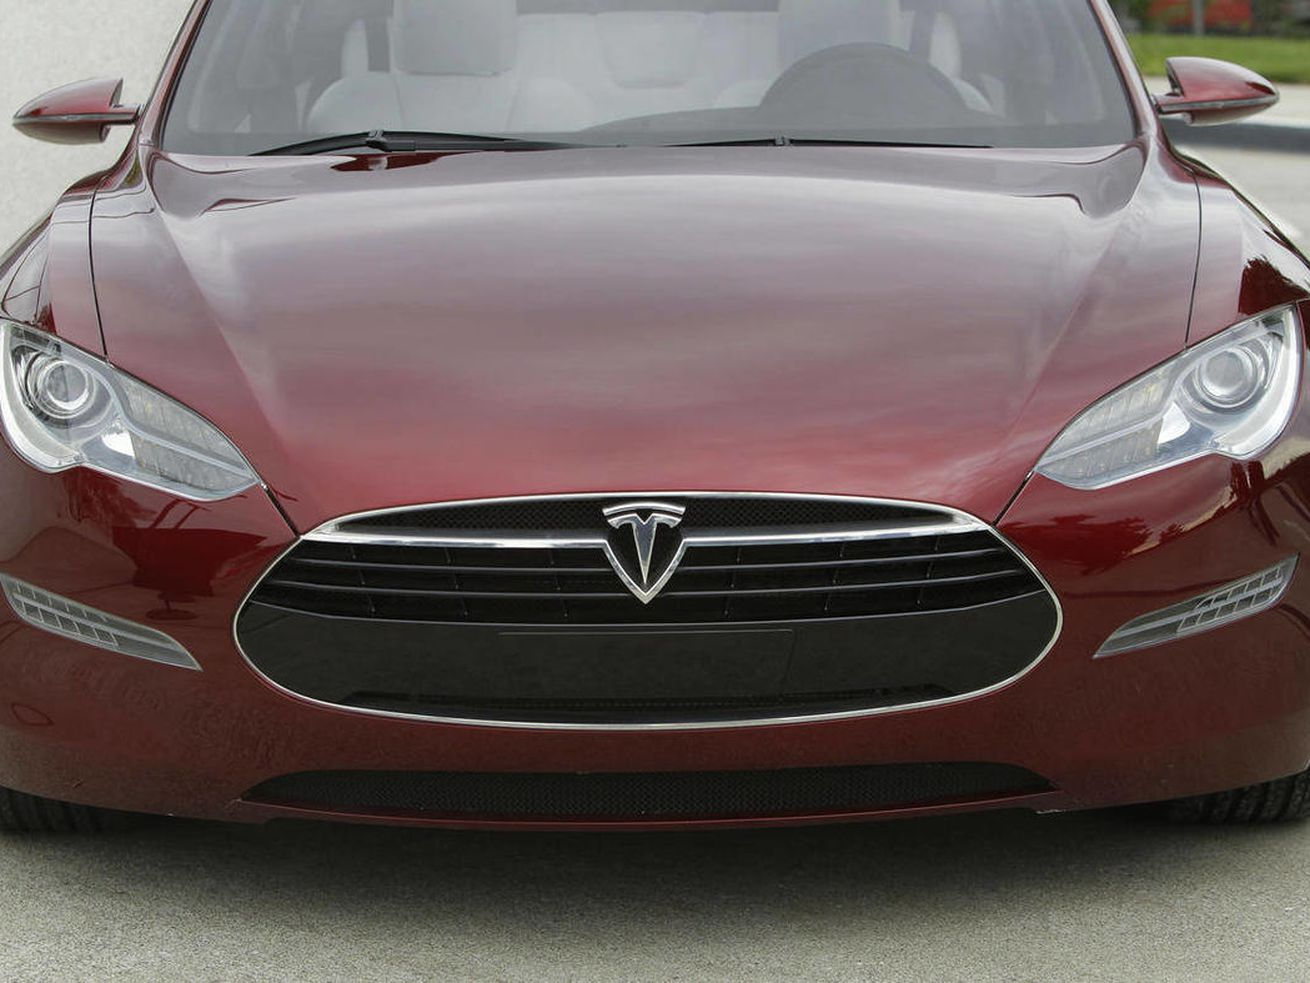 The U.S. is looking into these sudden acceleration complaints over Tesla vehicles